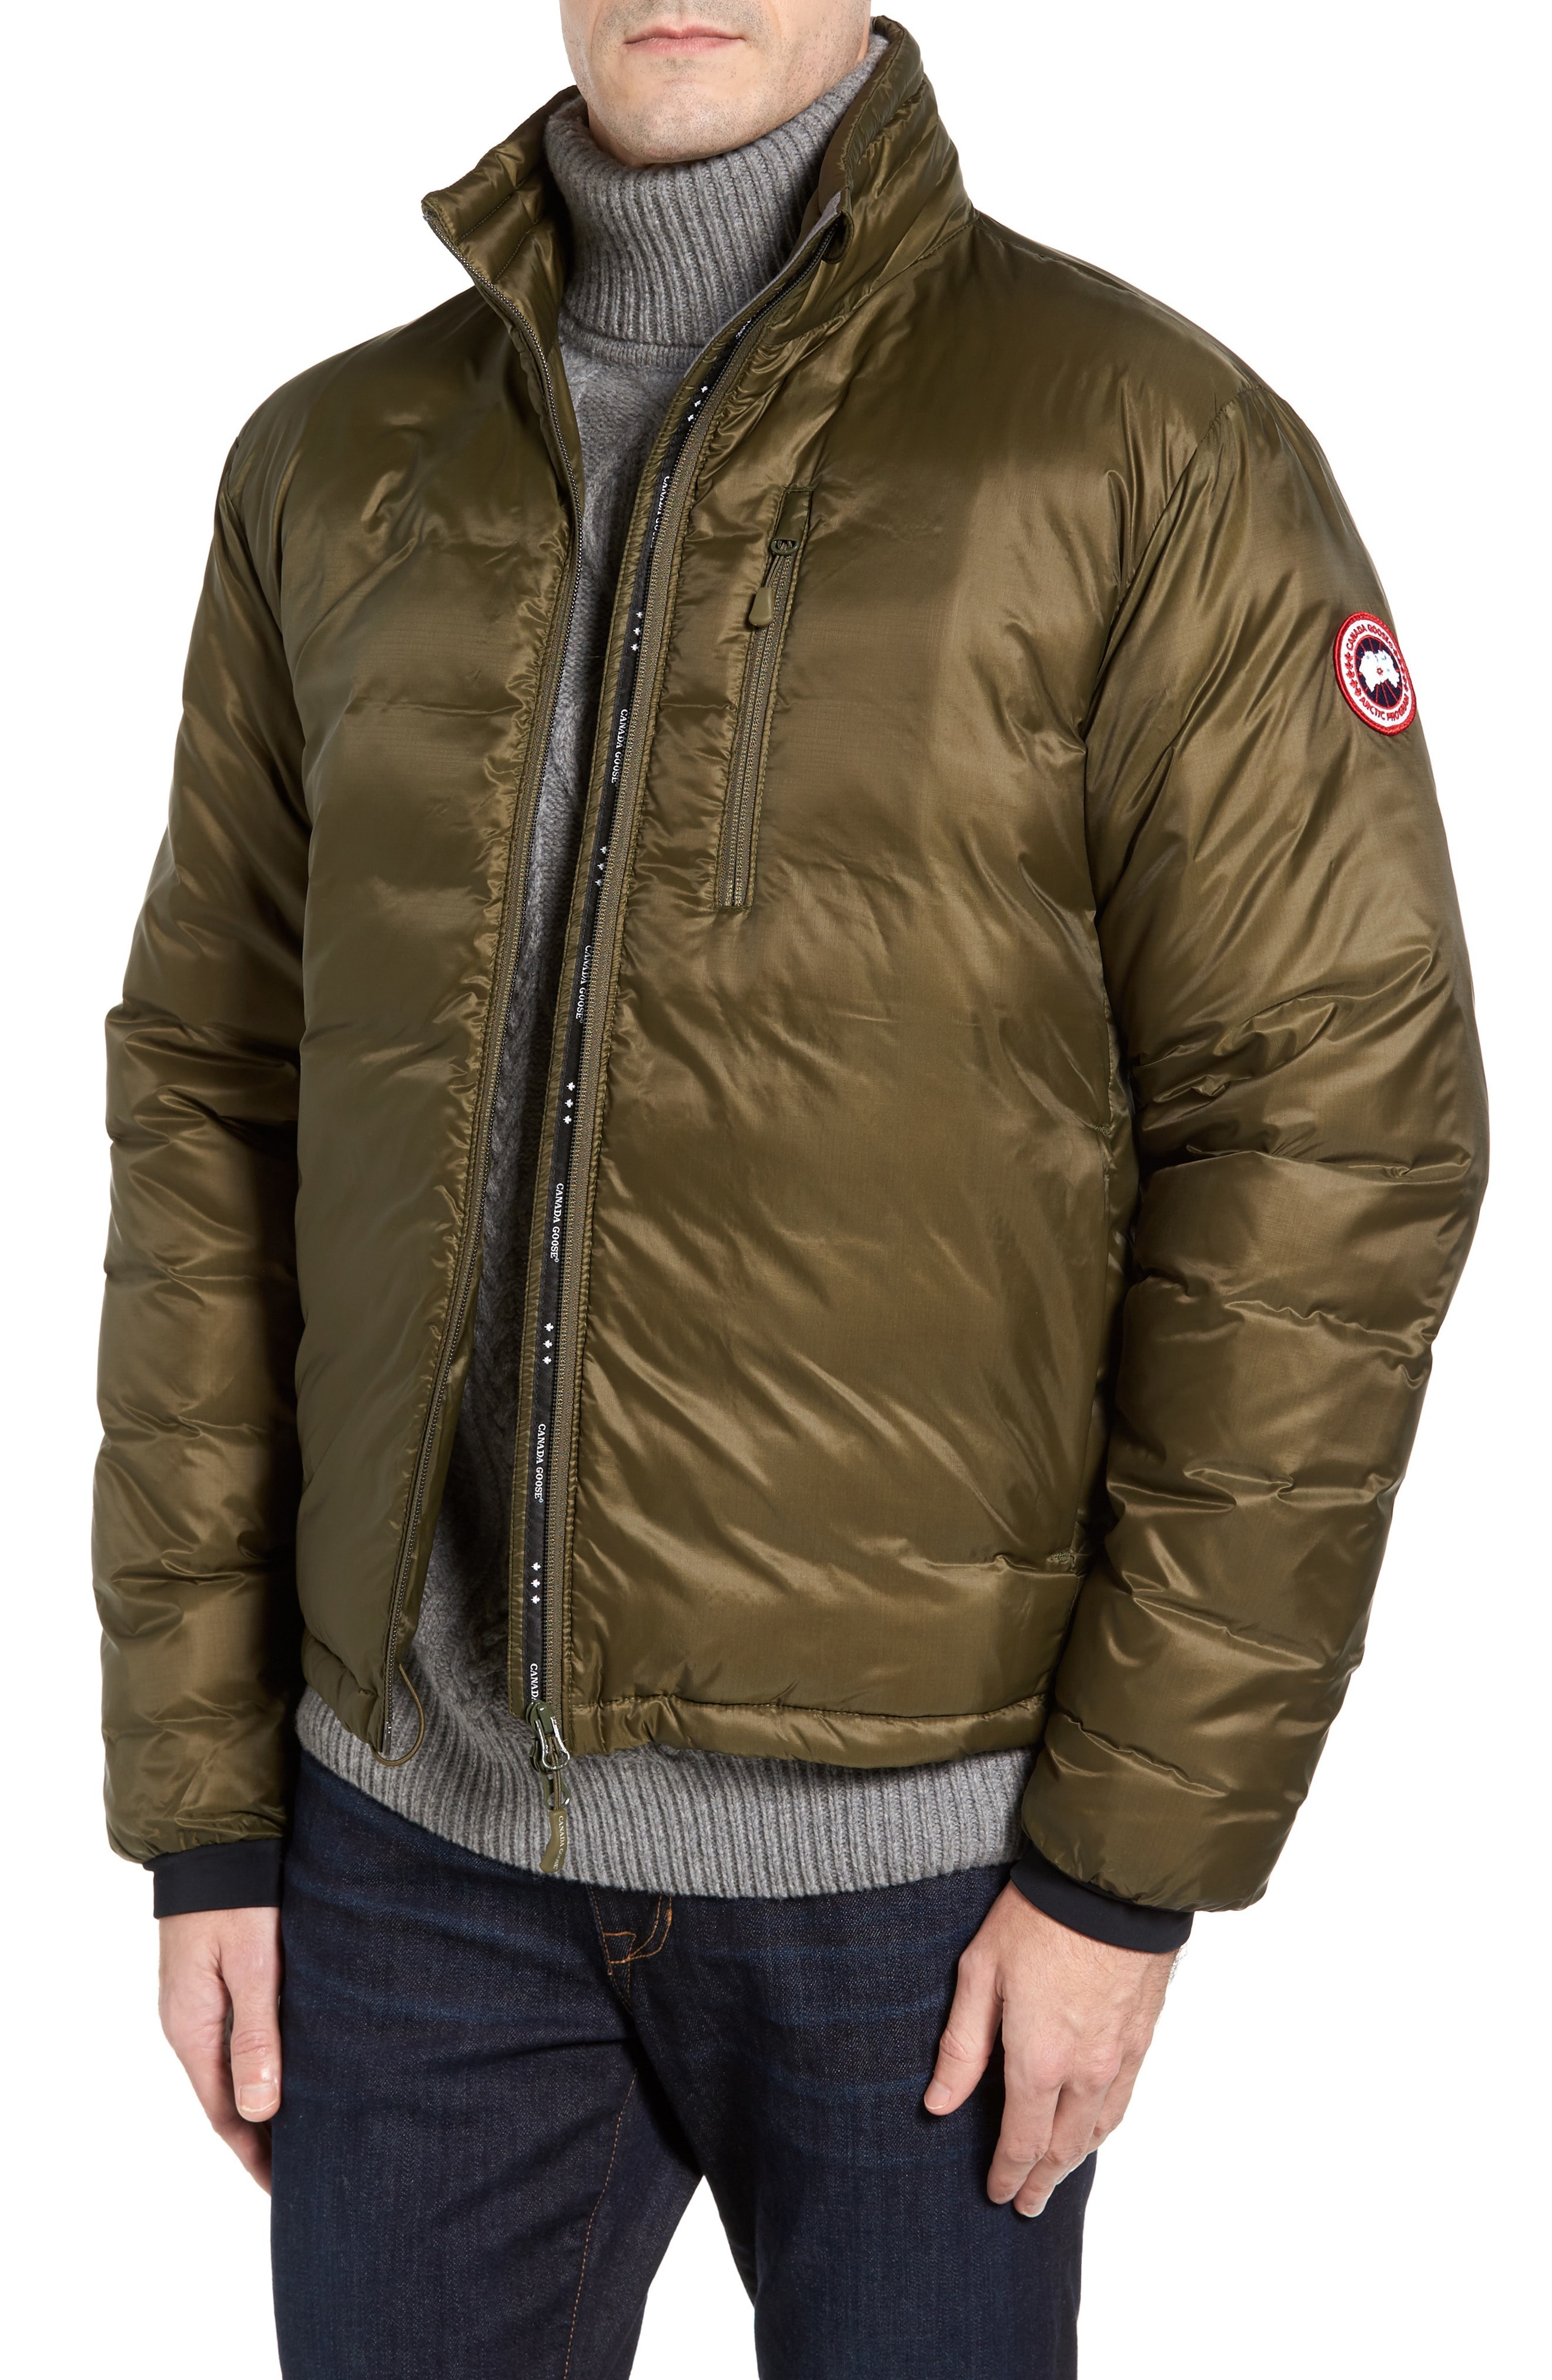 e047af85112 Men's Canada Goose 'Lodge' Slim Fit Packable Windproof 750 Down Fill  Jacket, Size Medium - Green